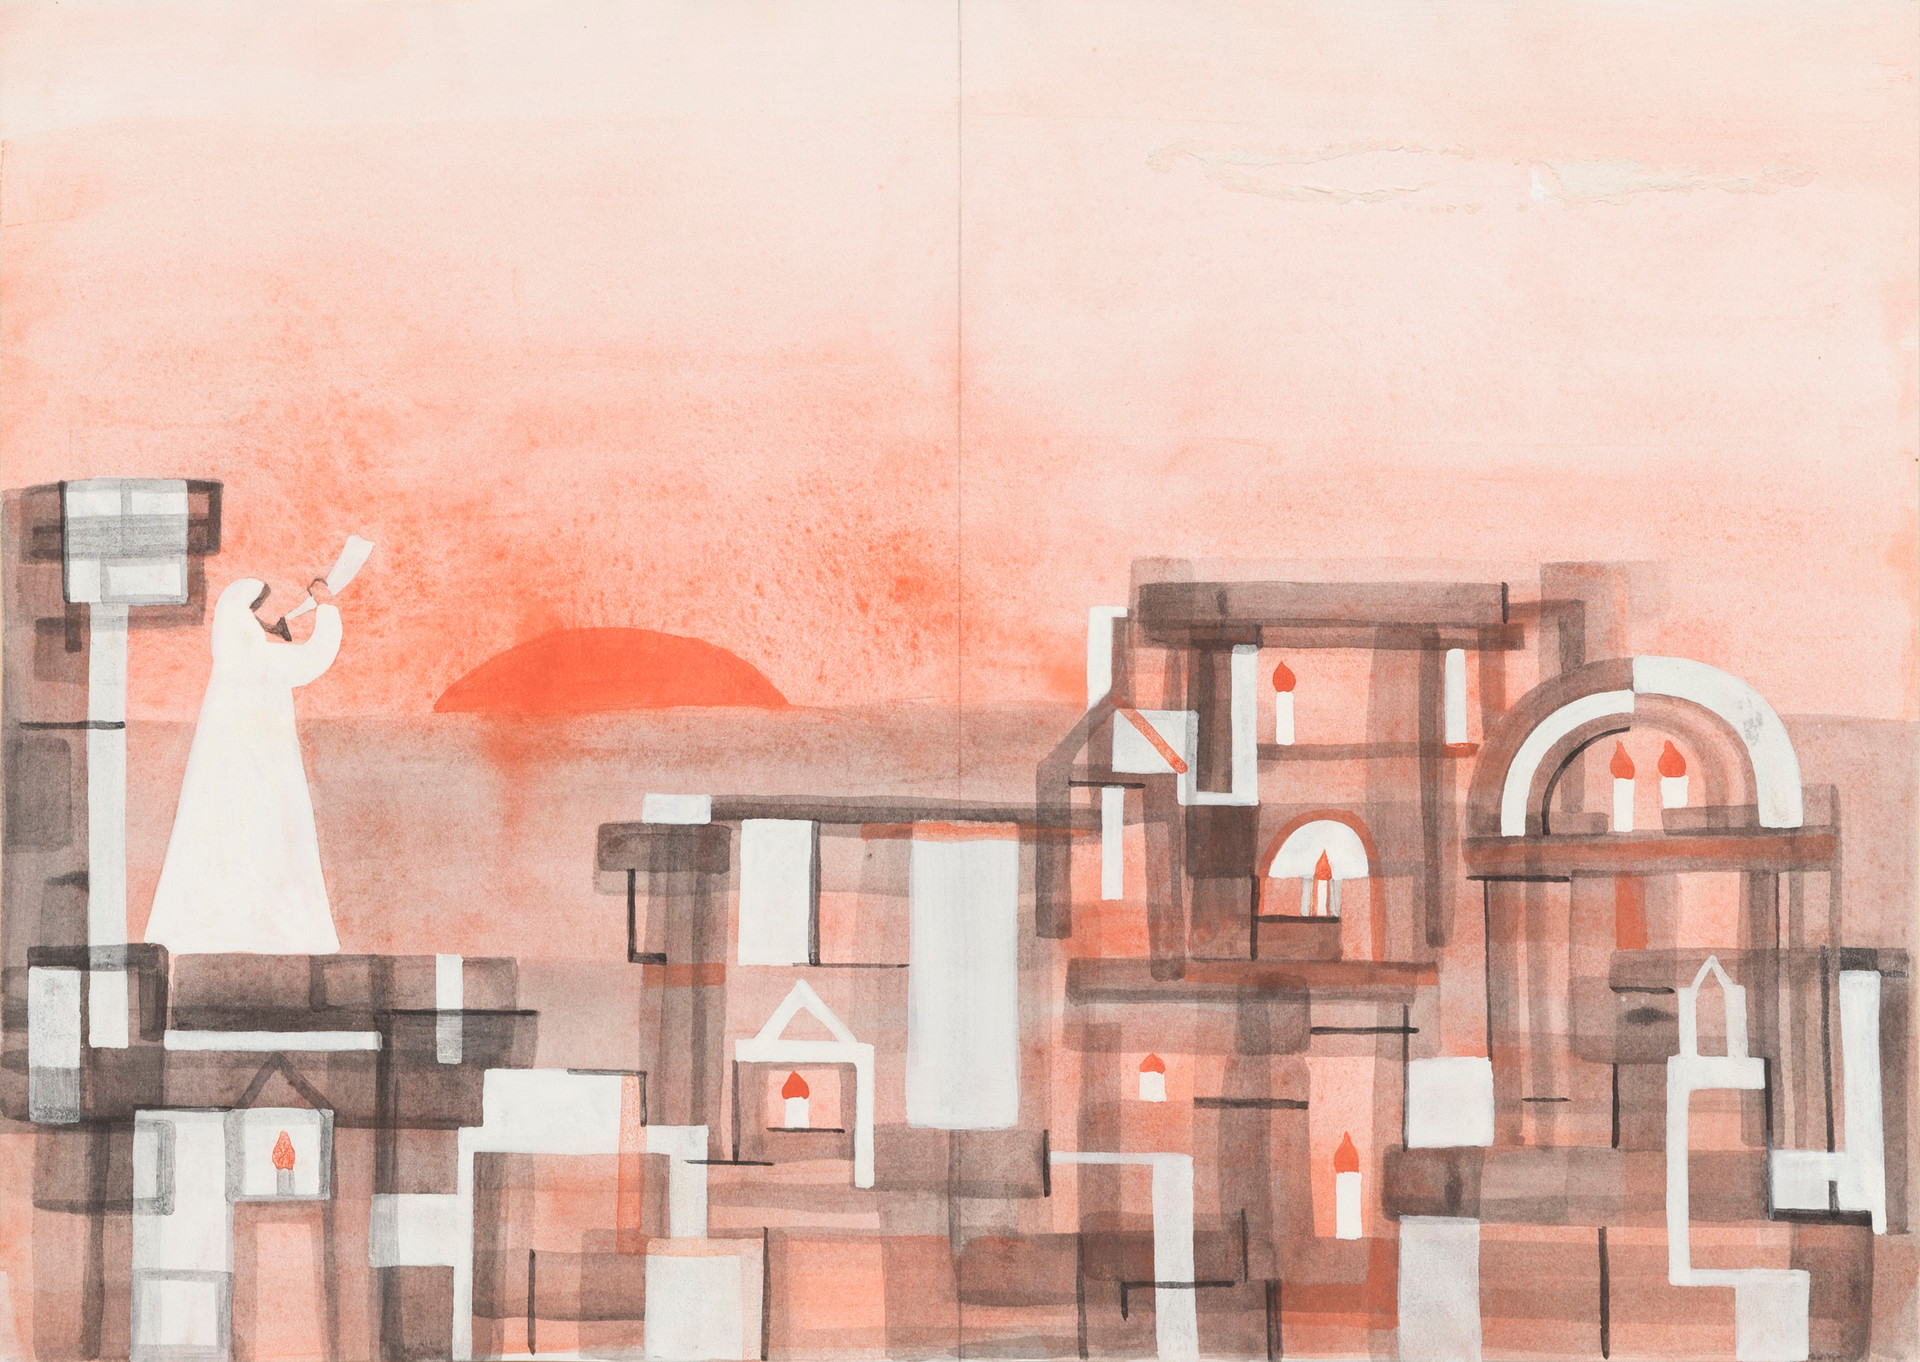 Untitled illustration - man in white gown blowing shofar at sunrise/set (2)